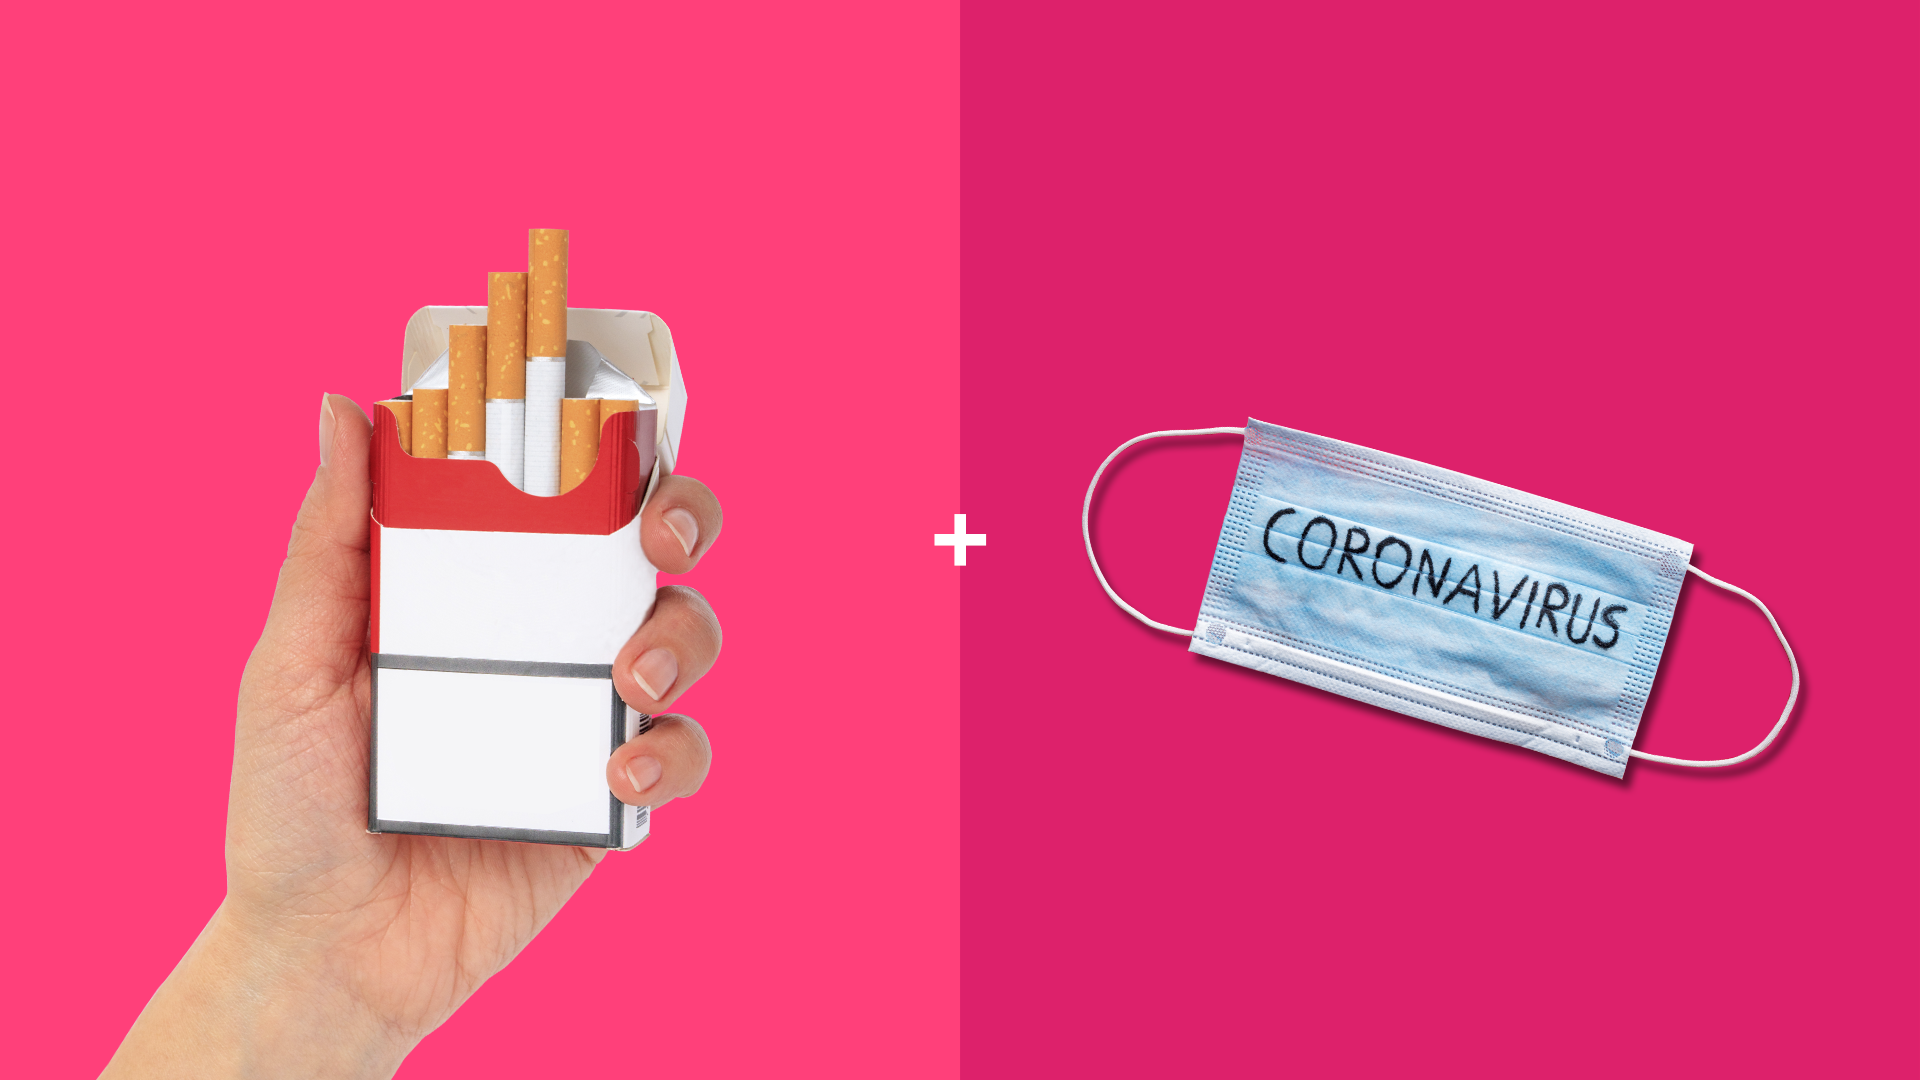 Does smoking increase your risk of getting COVID-19?